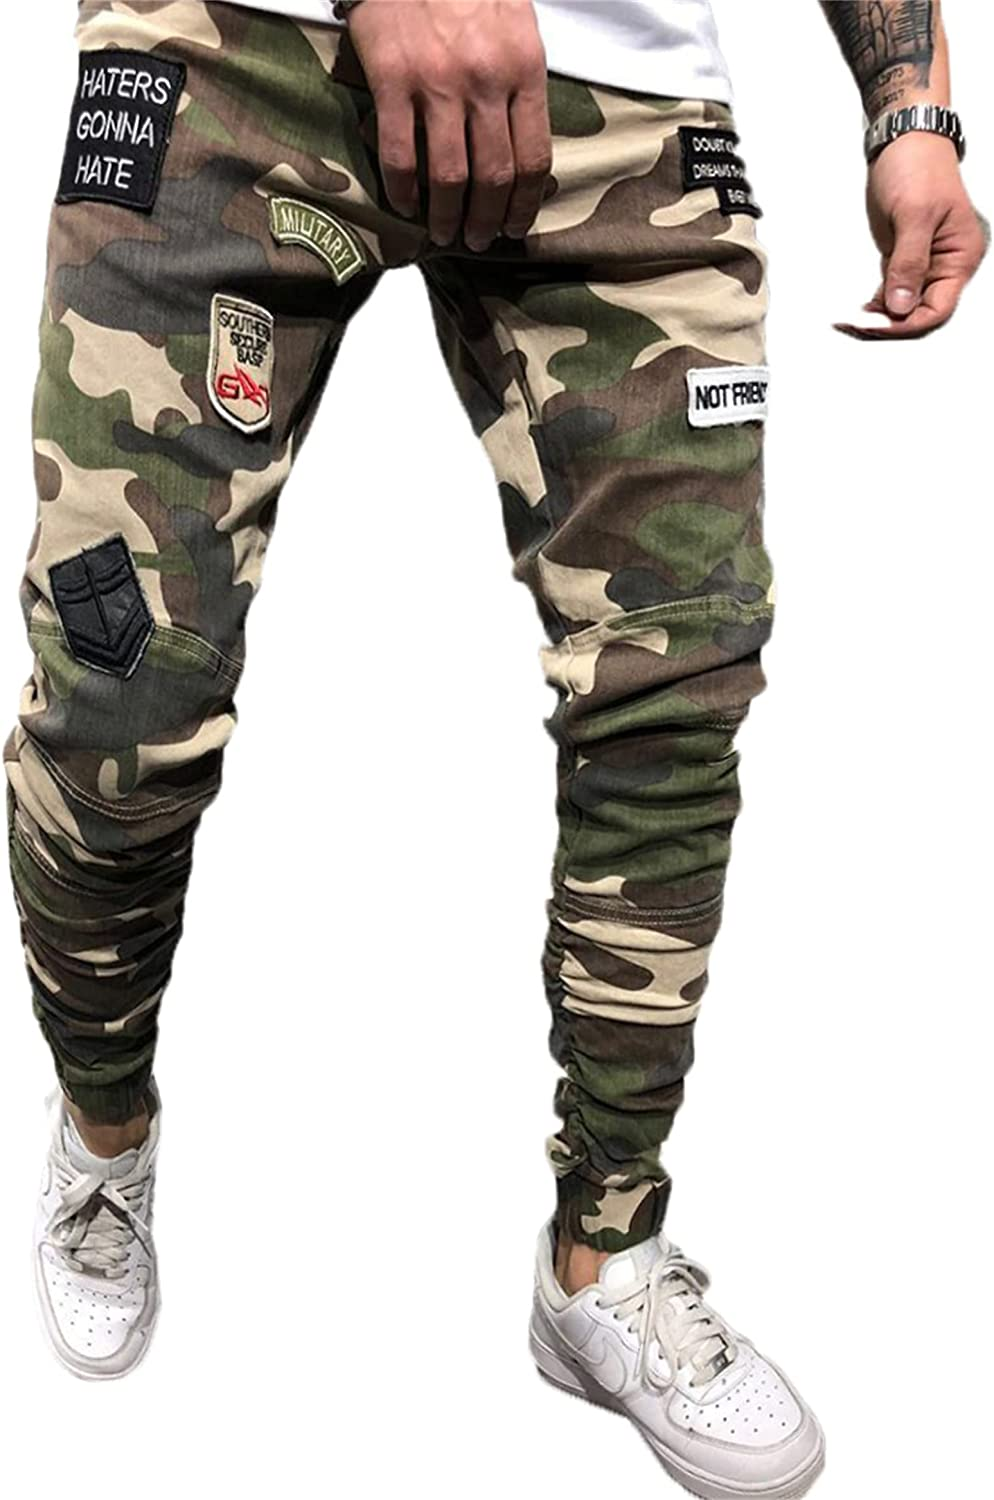 Andongnywell In a popularity Men's Slim fit Max 86% OFF Camo Military Pants Casual Ca Combat